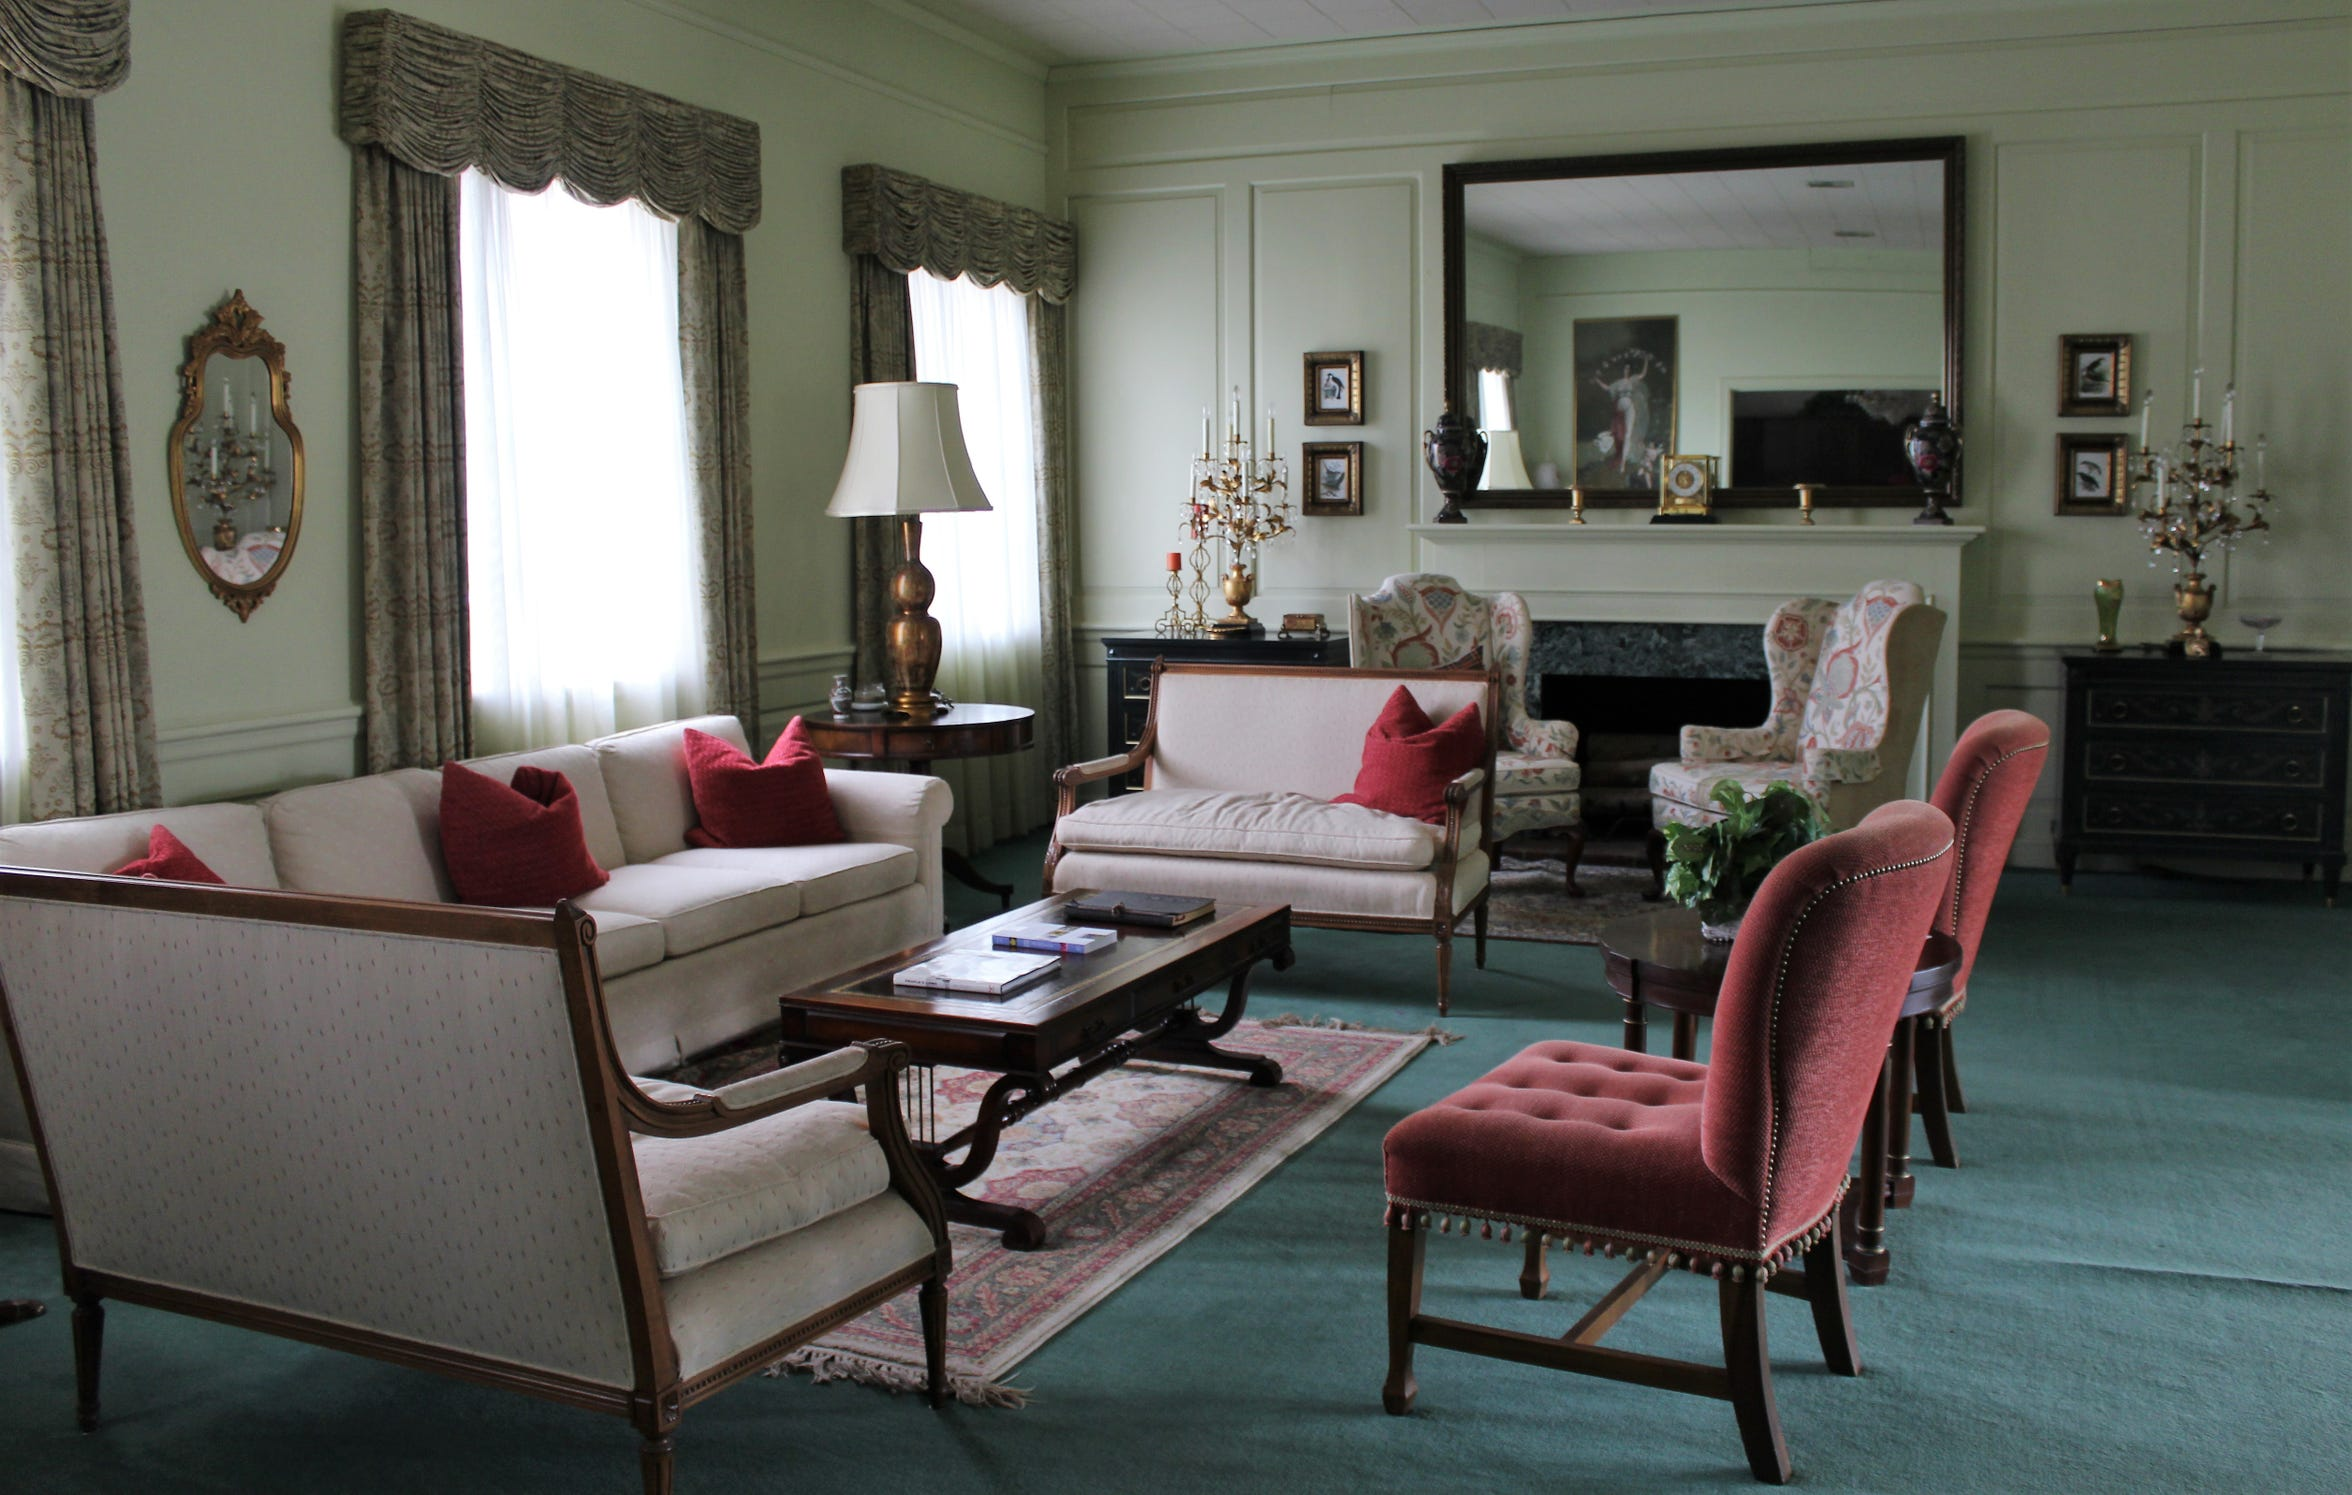 A sitting area at the Abilene Woman's Club. The organization has prided itself on its elegant appearance.